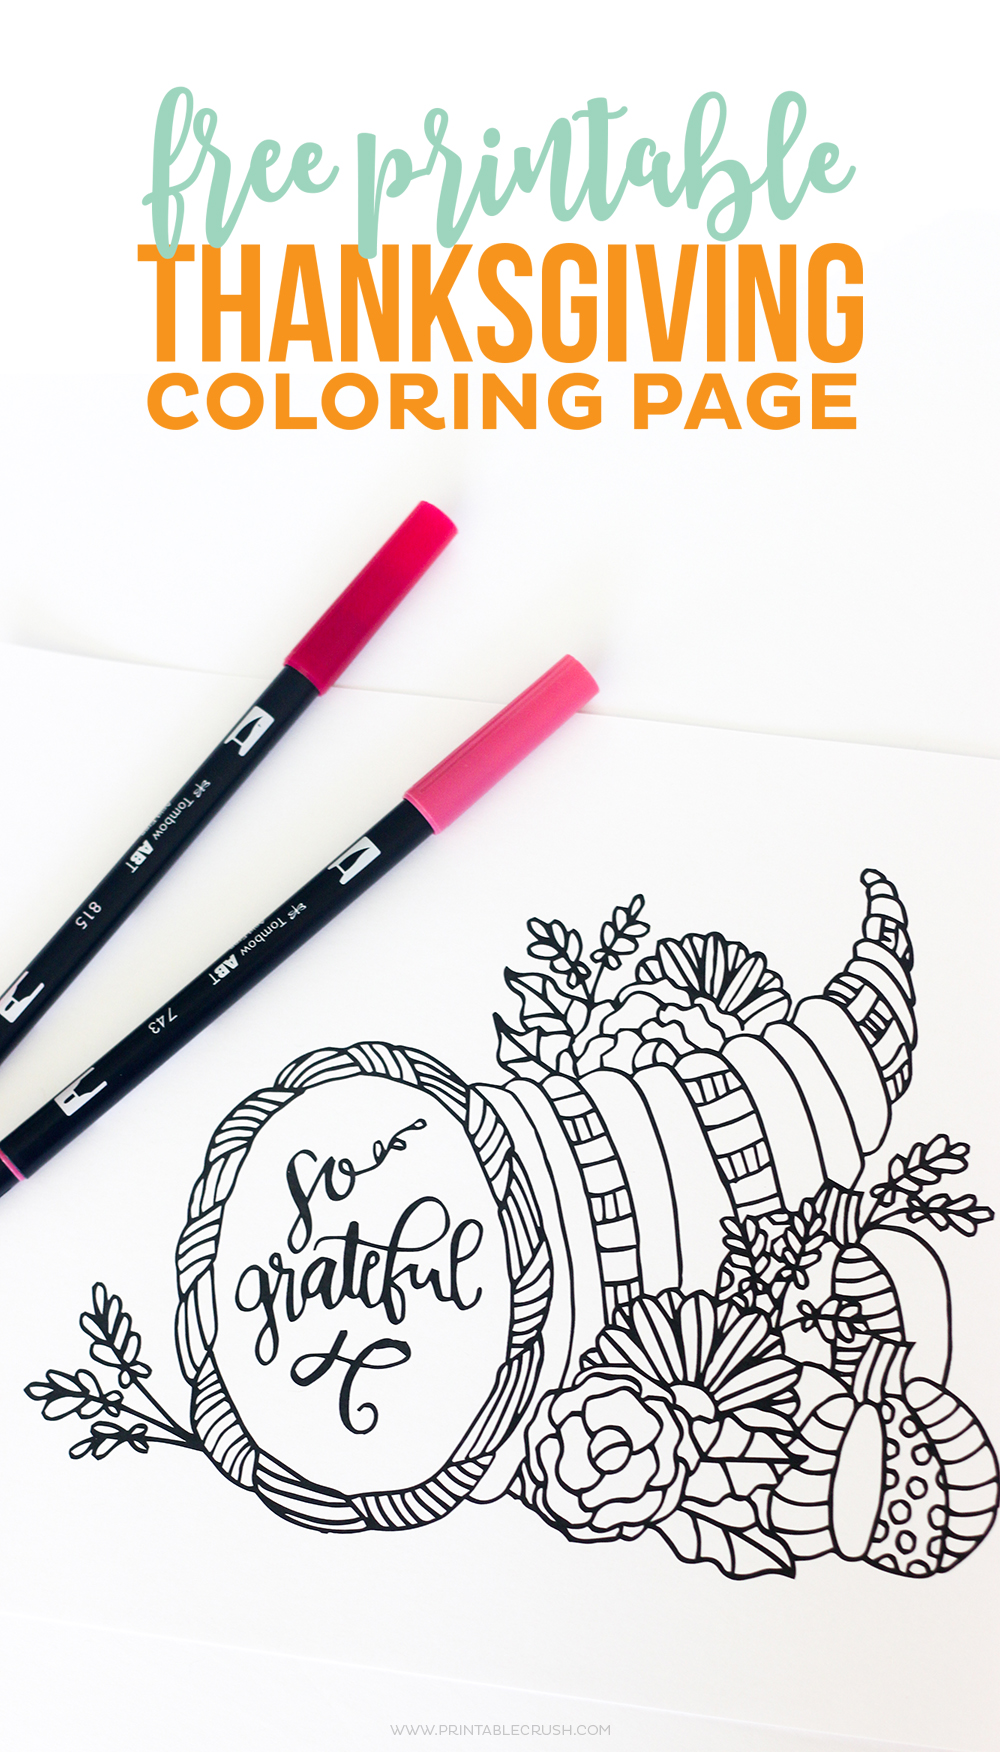 Thanksgiving Coloring Pages with 2 pens on white background